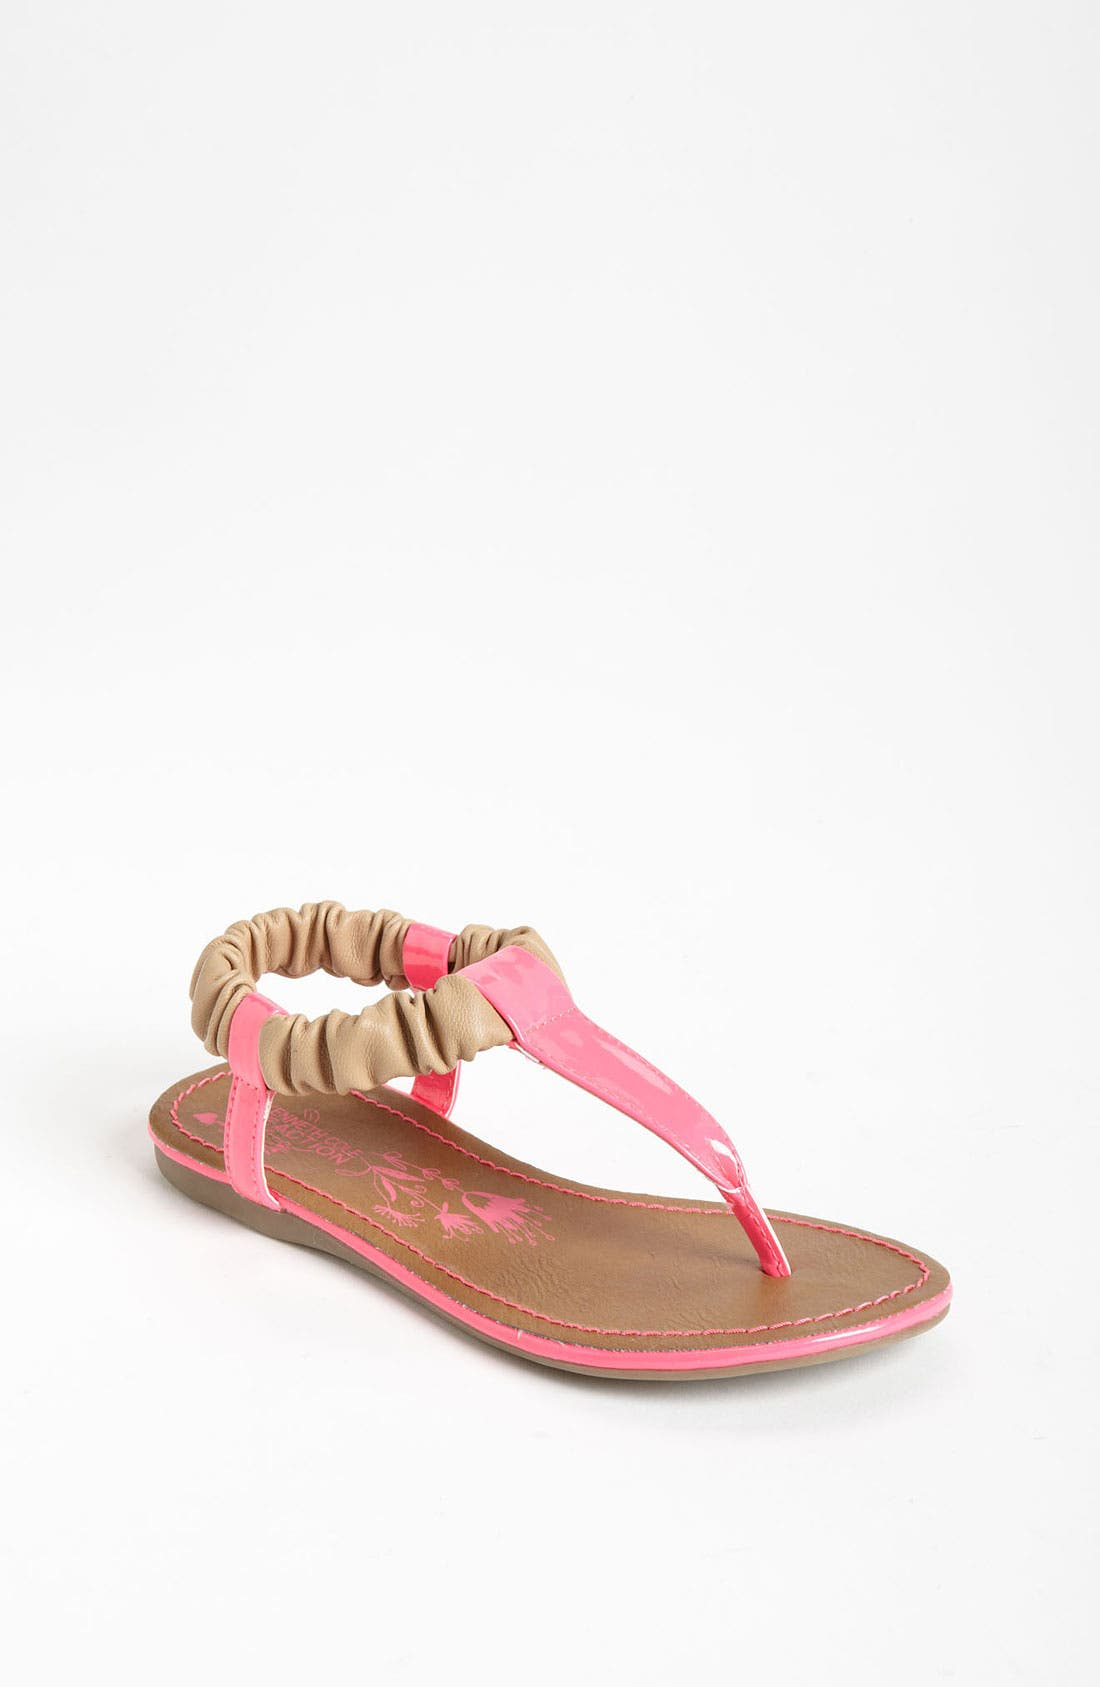 Main Image - Kenneth Cole Reaction 'Same Float' Sandal (Walker, Toddler, Little Kid & Big Kid)